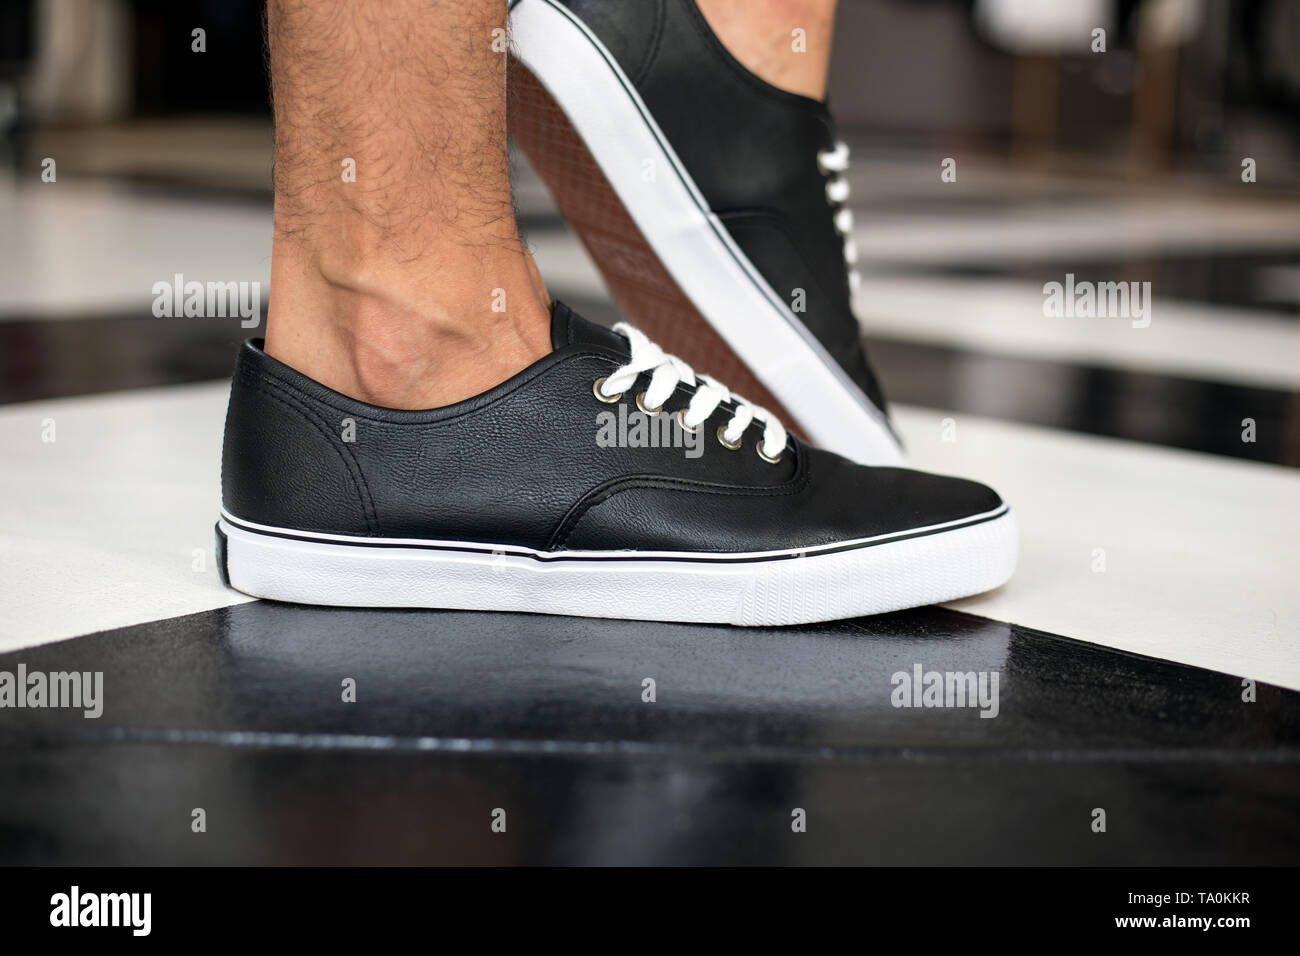 A simple style of black and white leather sneakers on feet for men. - Stock Image